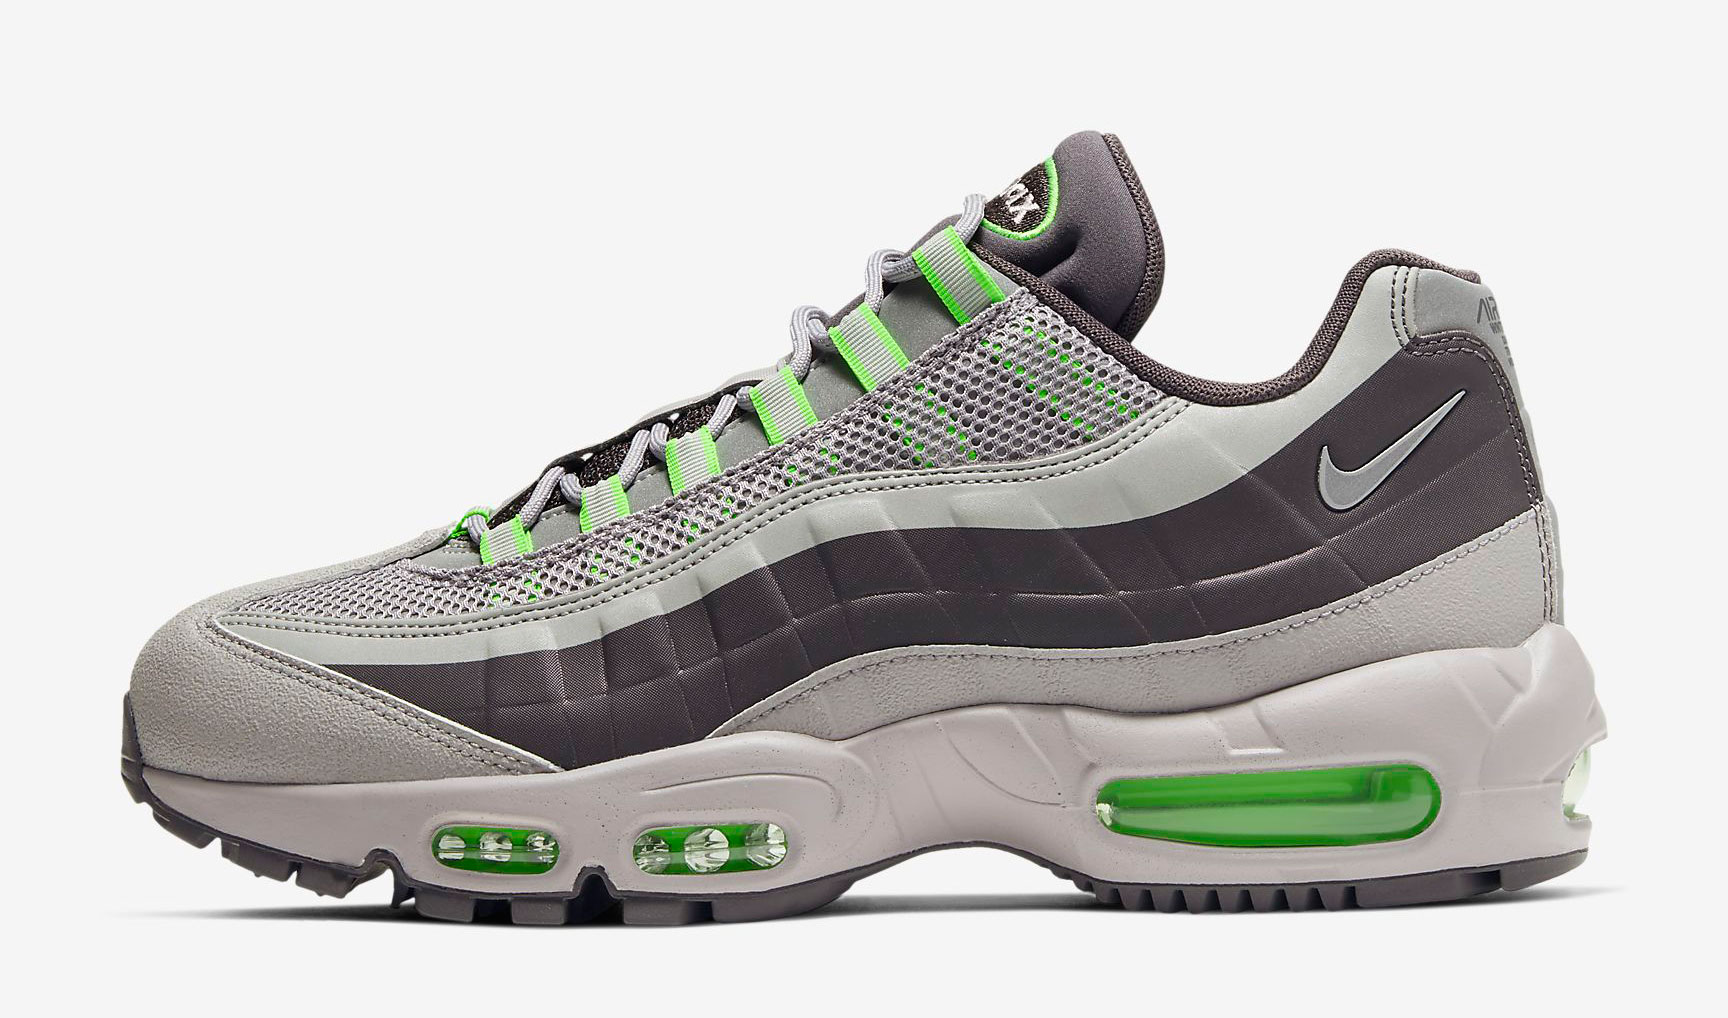 nike-air-max-95-utility-thunder-grey-electric-green-release-date